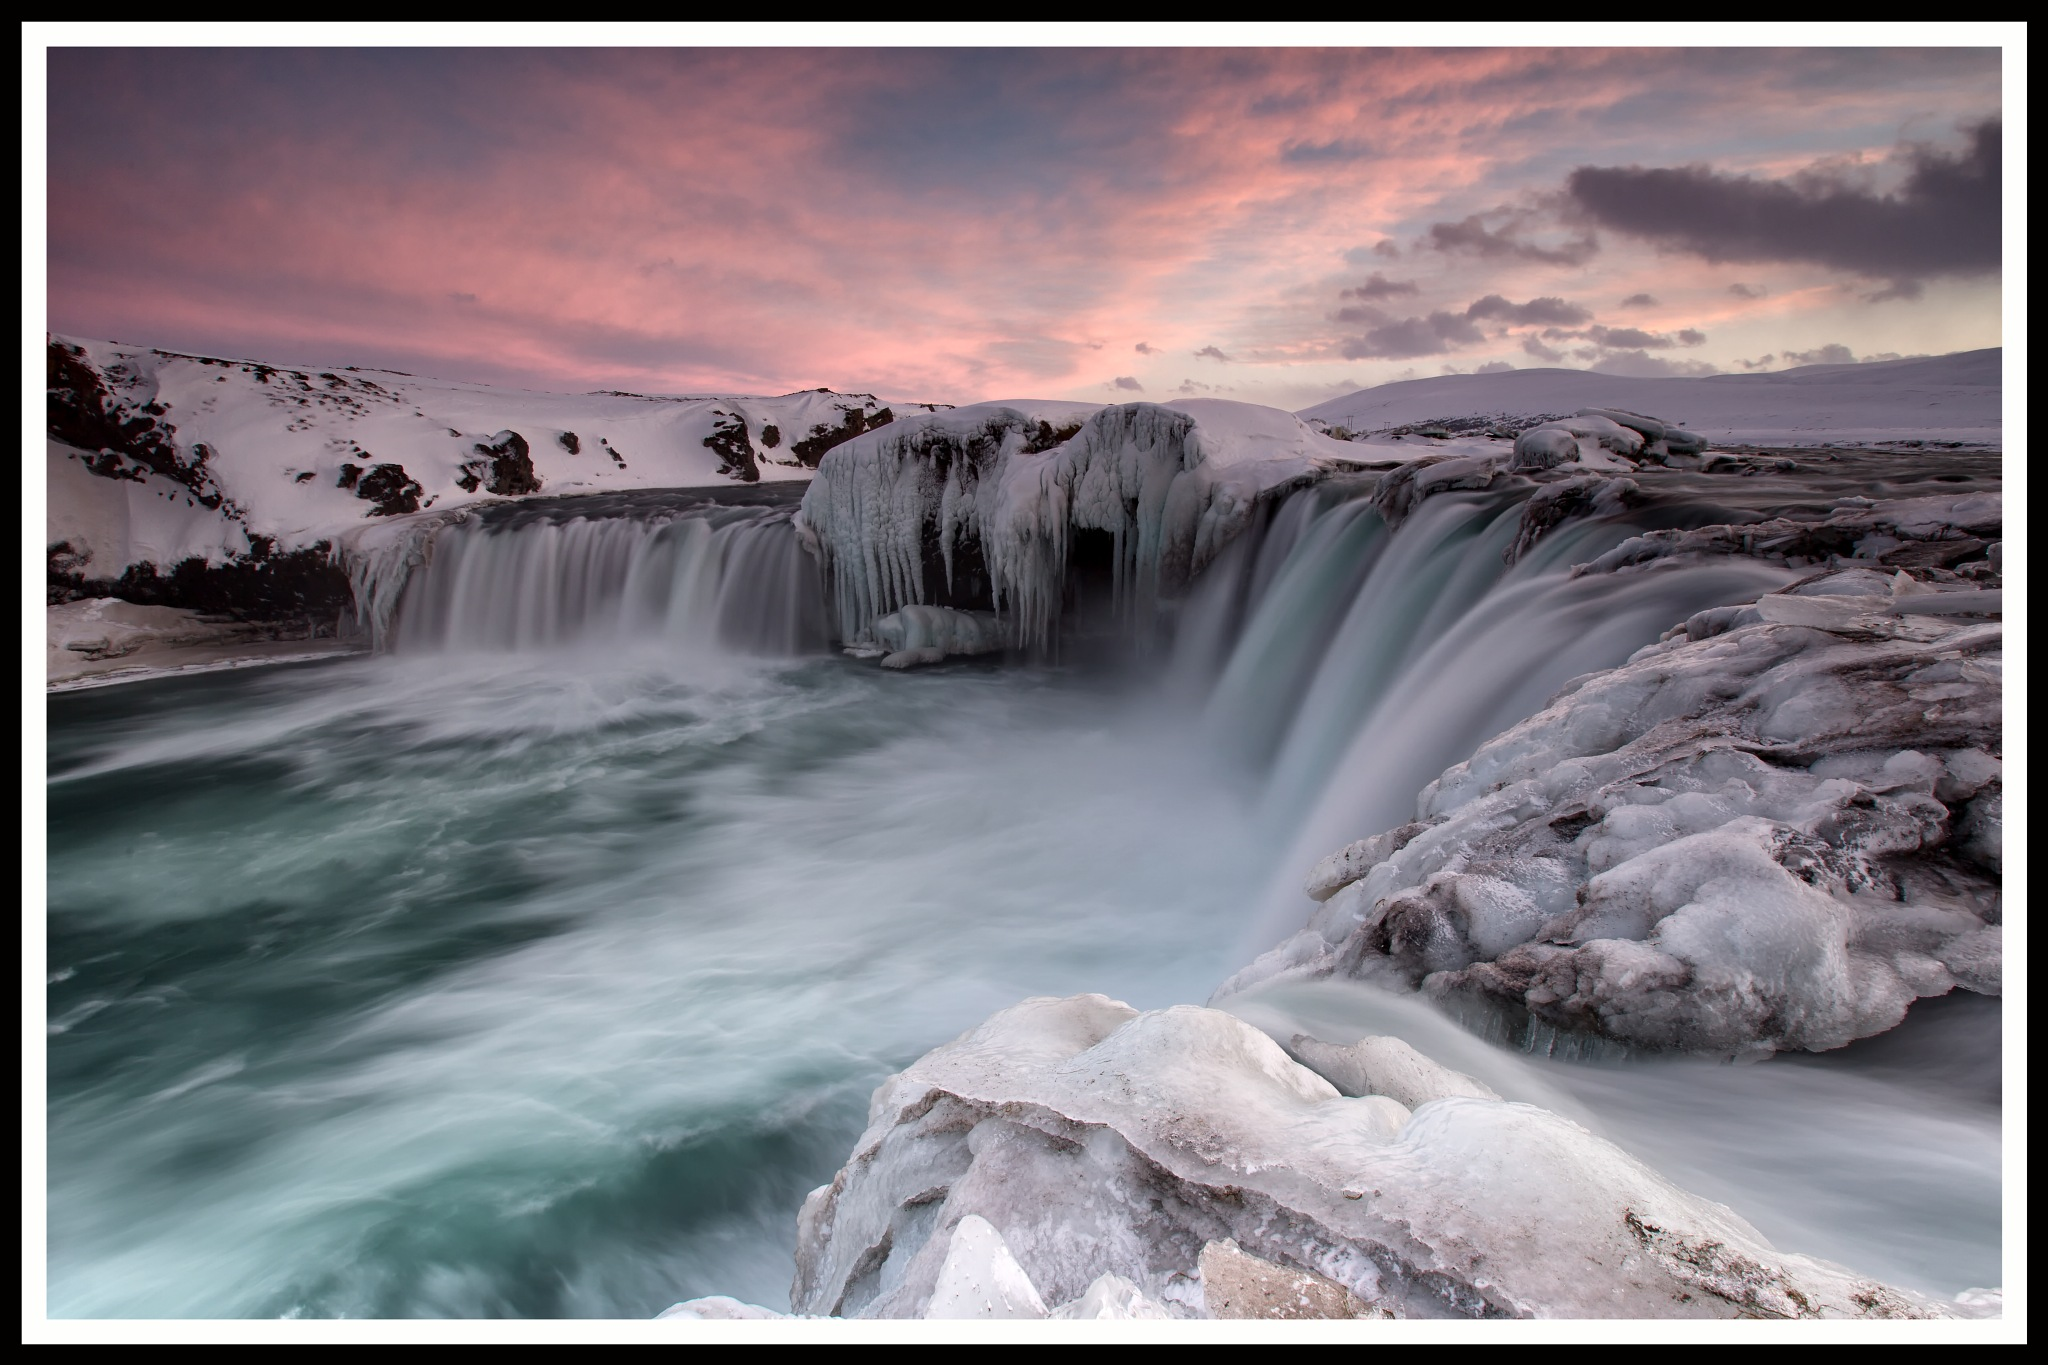 Goðafoss sunset by Gordon Dryden